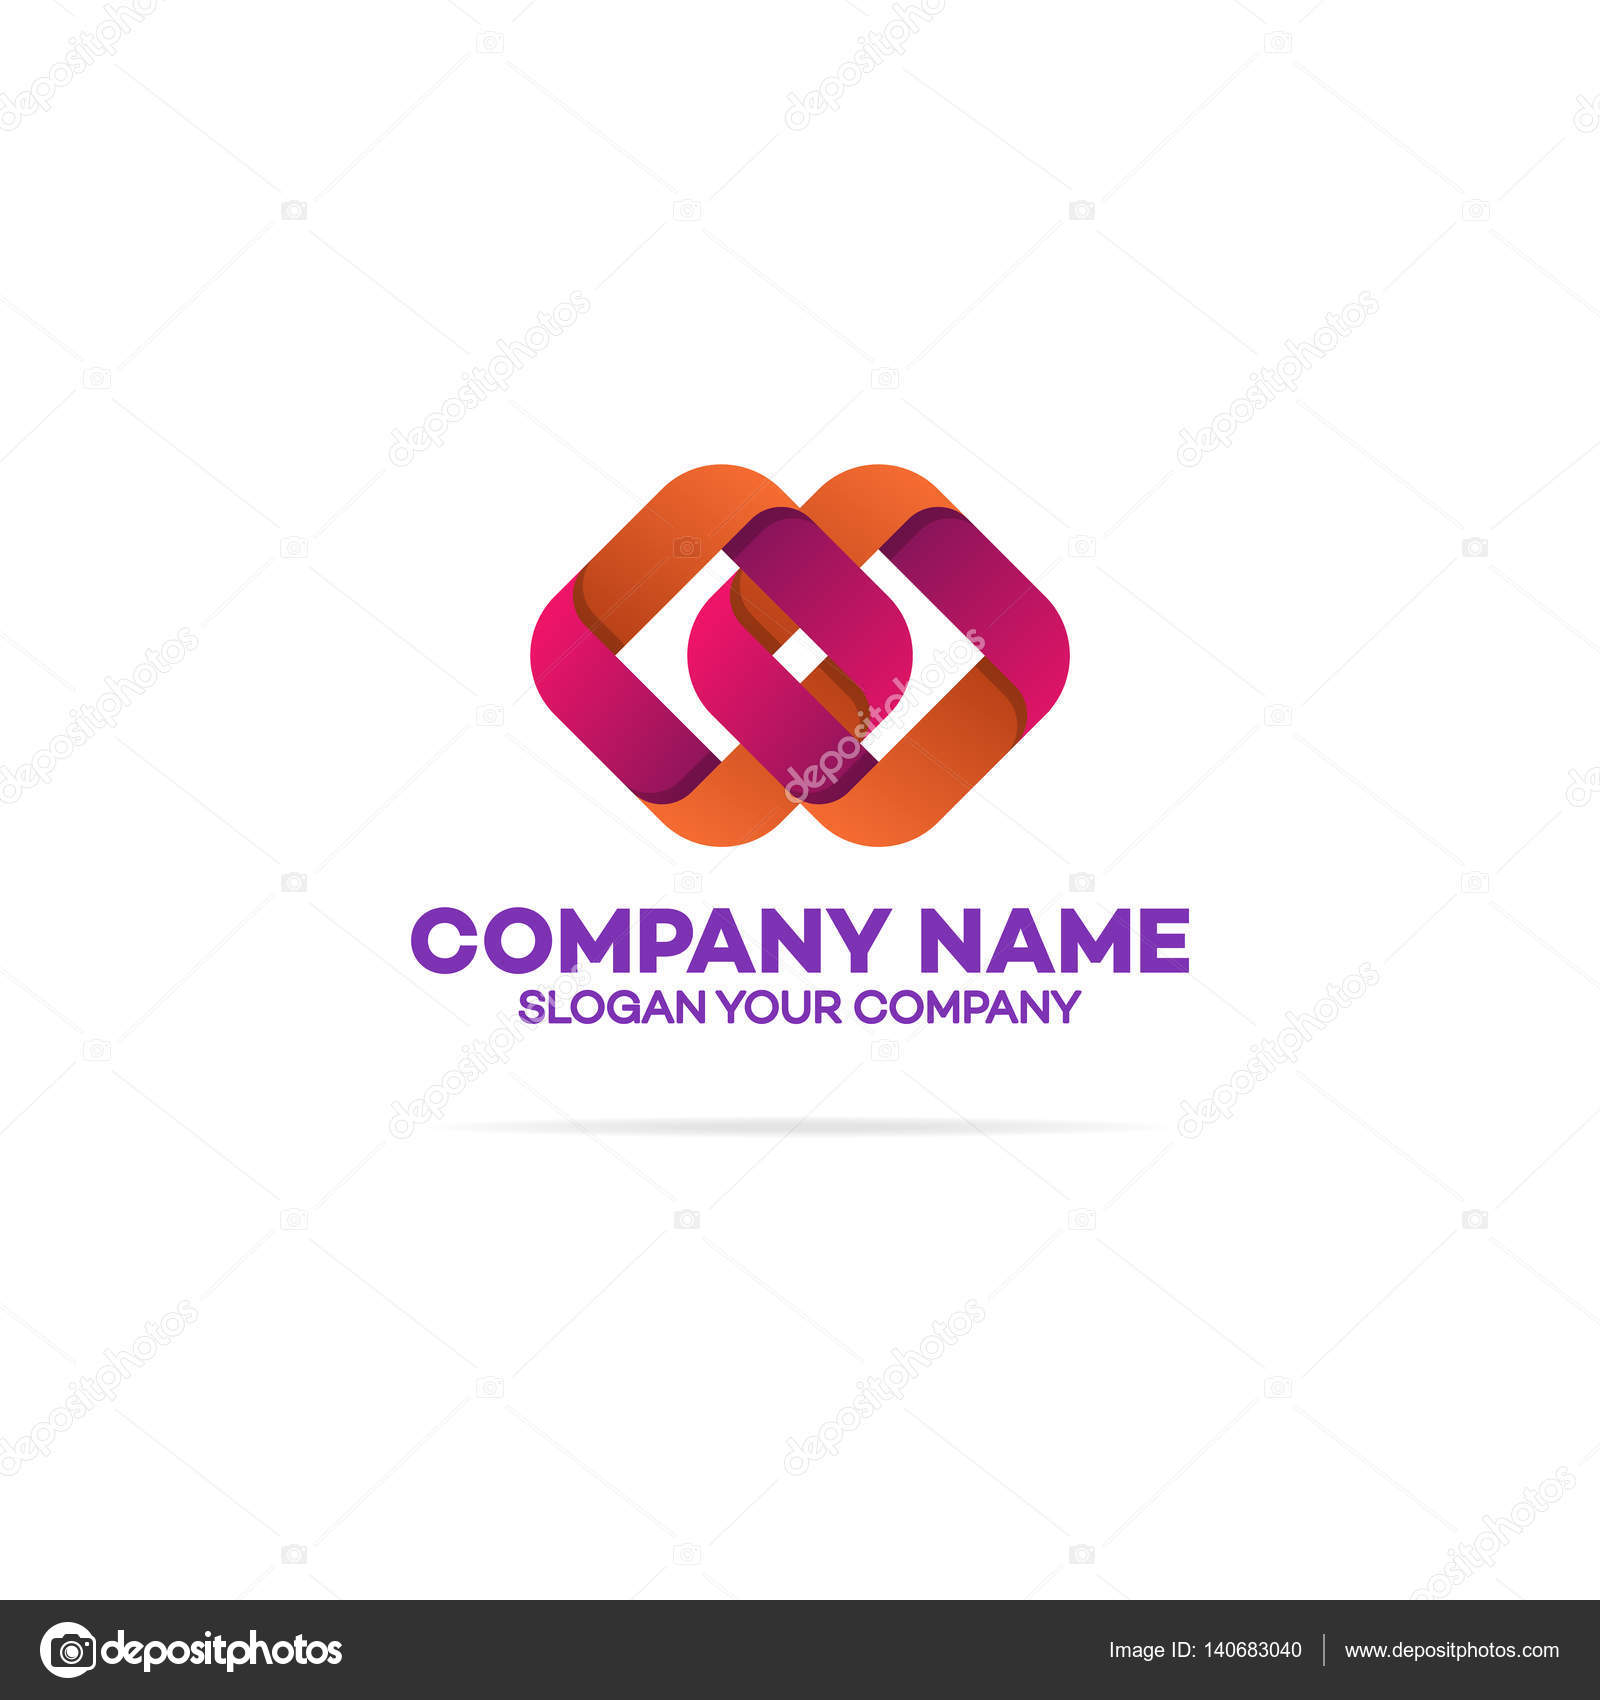 Chain logo template with two squares stock vector vi6277 chain logo template with two squares on white background can used for corporate identity marketing firm funds service investment and other square logo buycottarizona